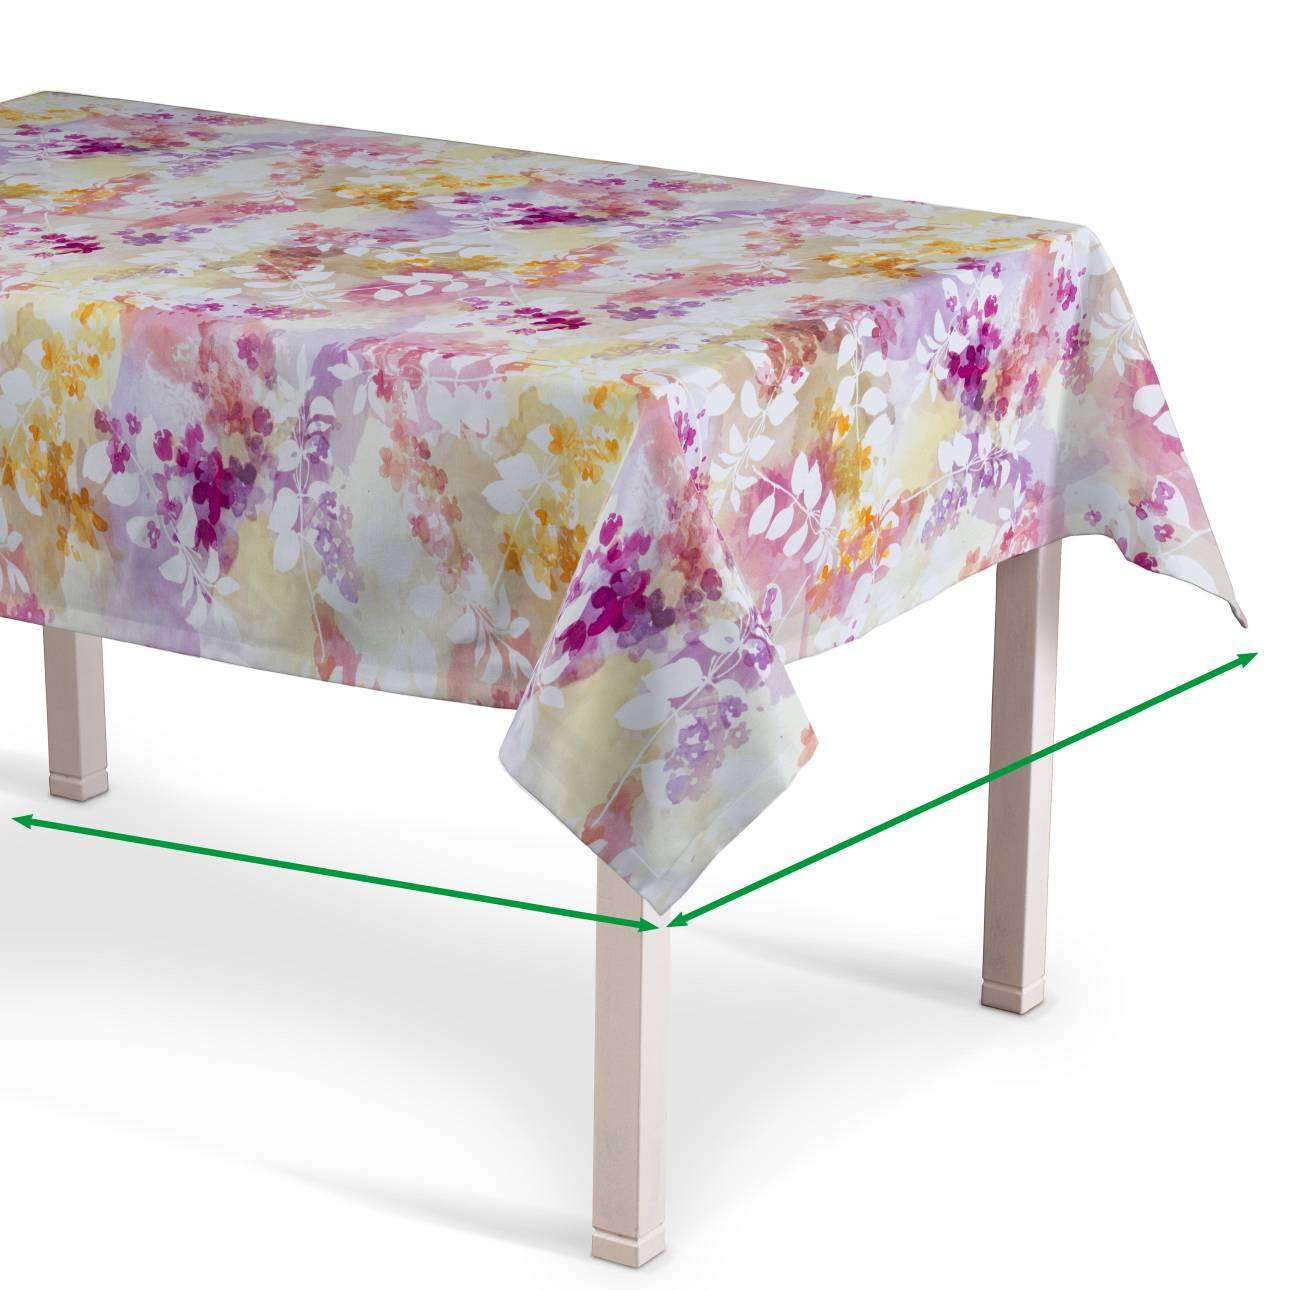 Rectangular tablecloth in collection Monet, fabric: 140-05